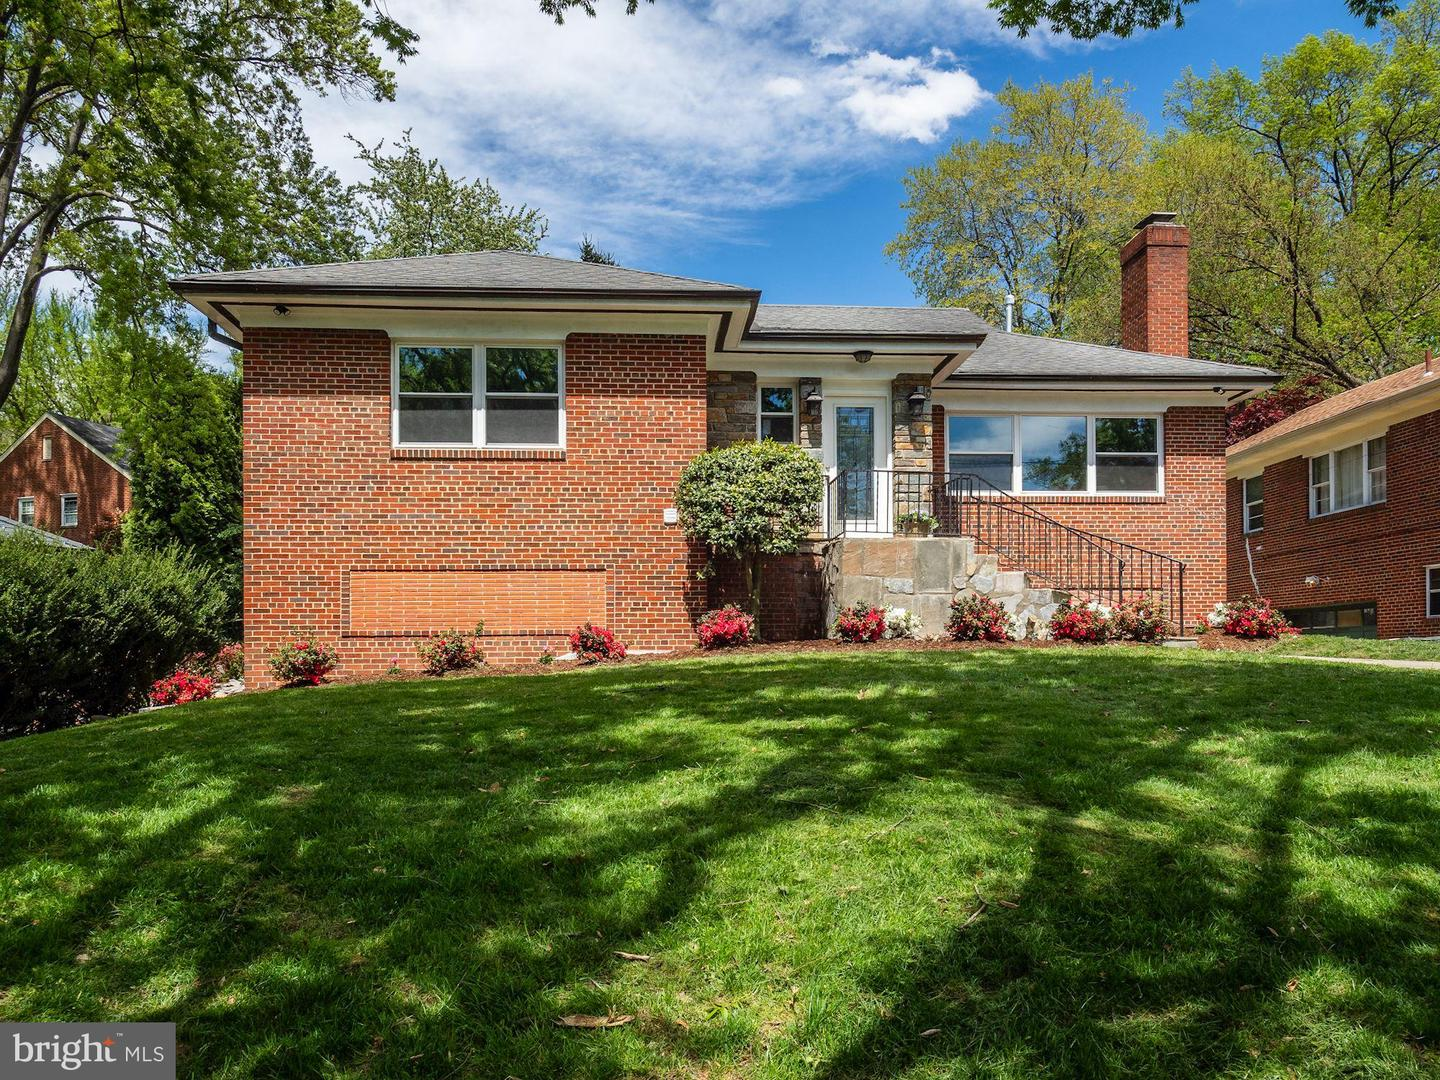 Single Family for Sale at 1633 Kalmia Rd NW Washington, District Of Columbia 20012 United States